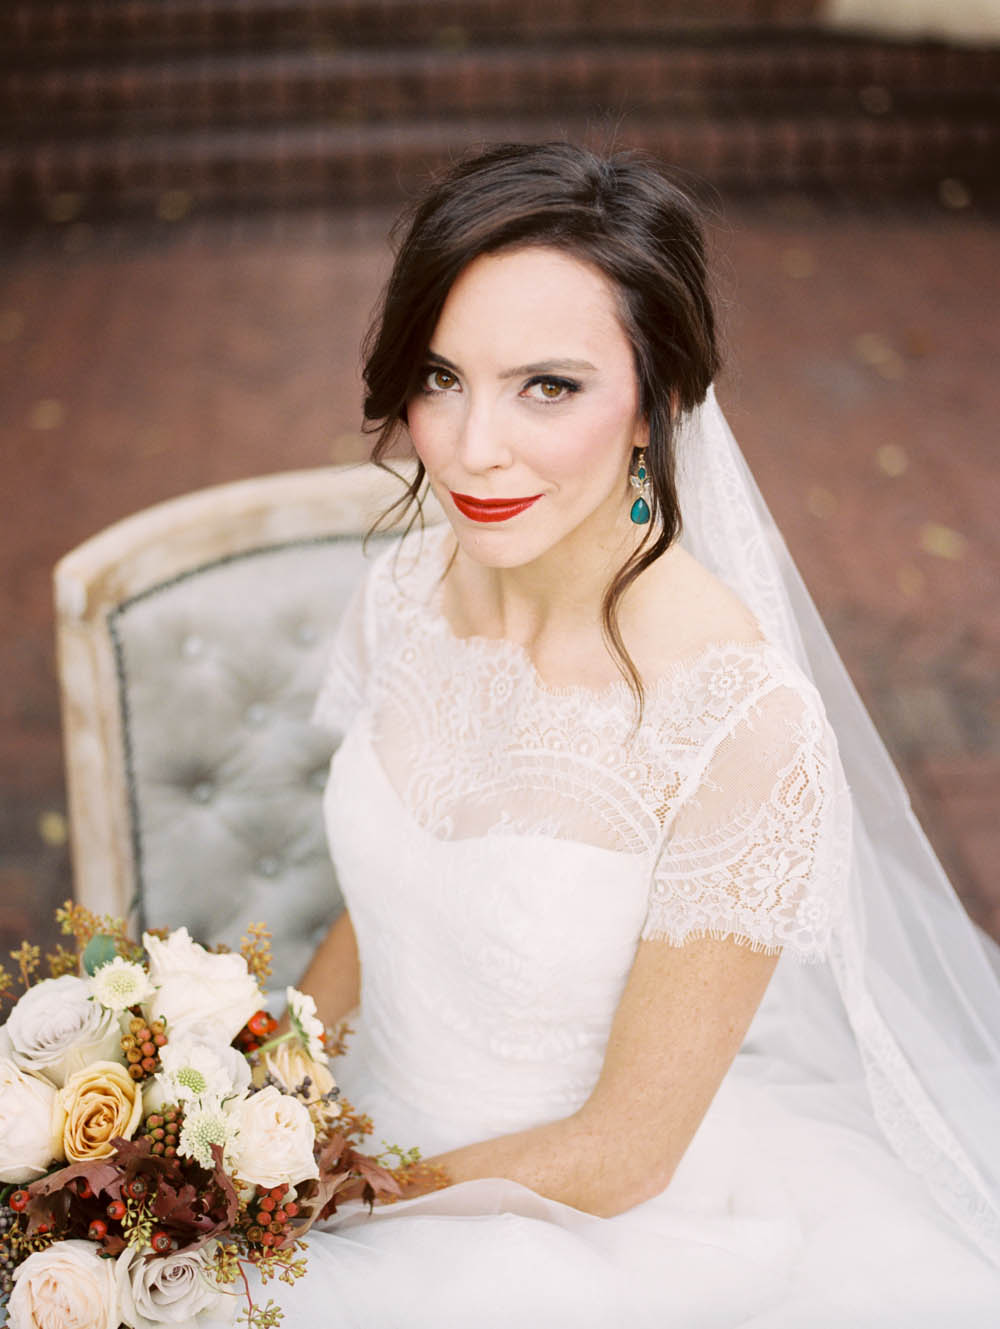 Cranberry and Deep Teal Wedding Inspiration